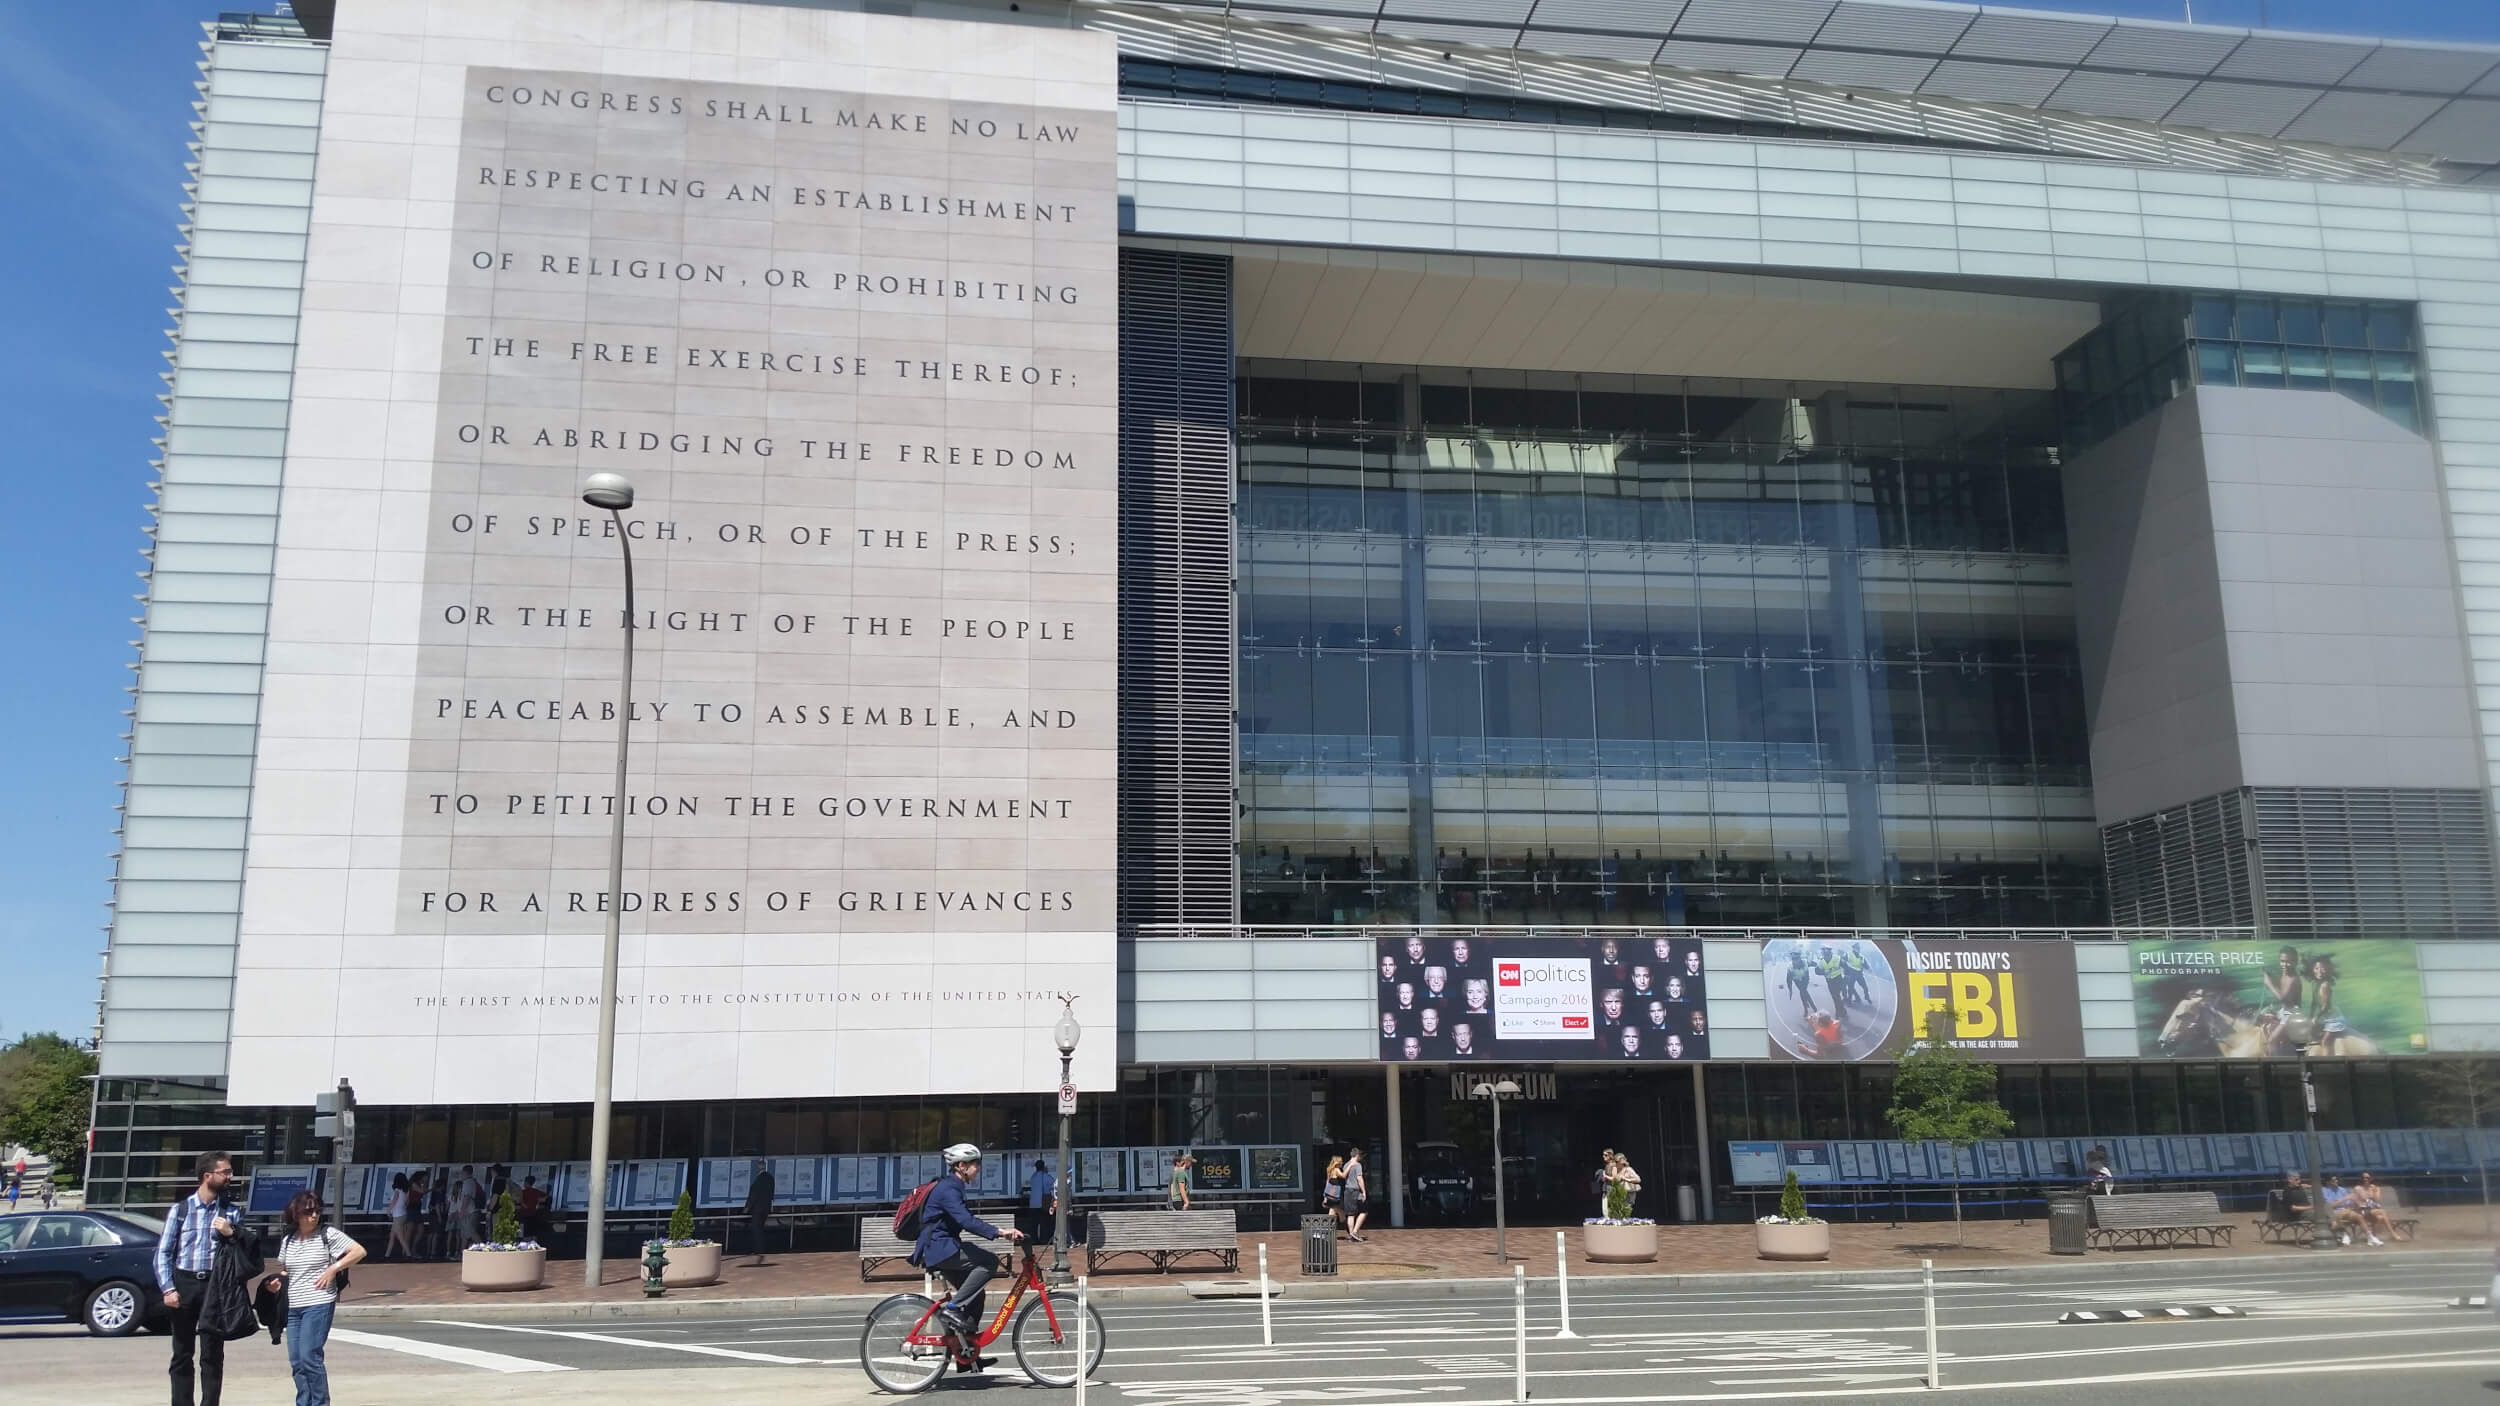 Newseum with Establishment clause